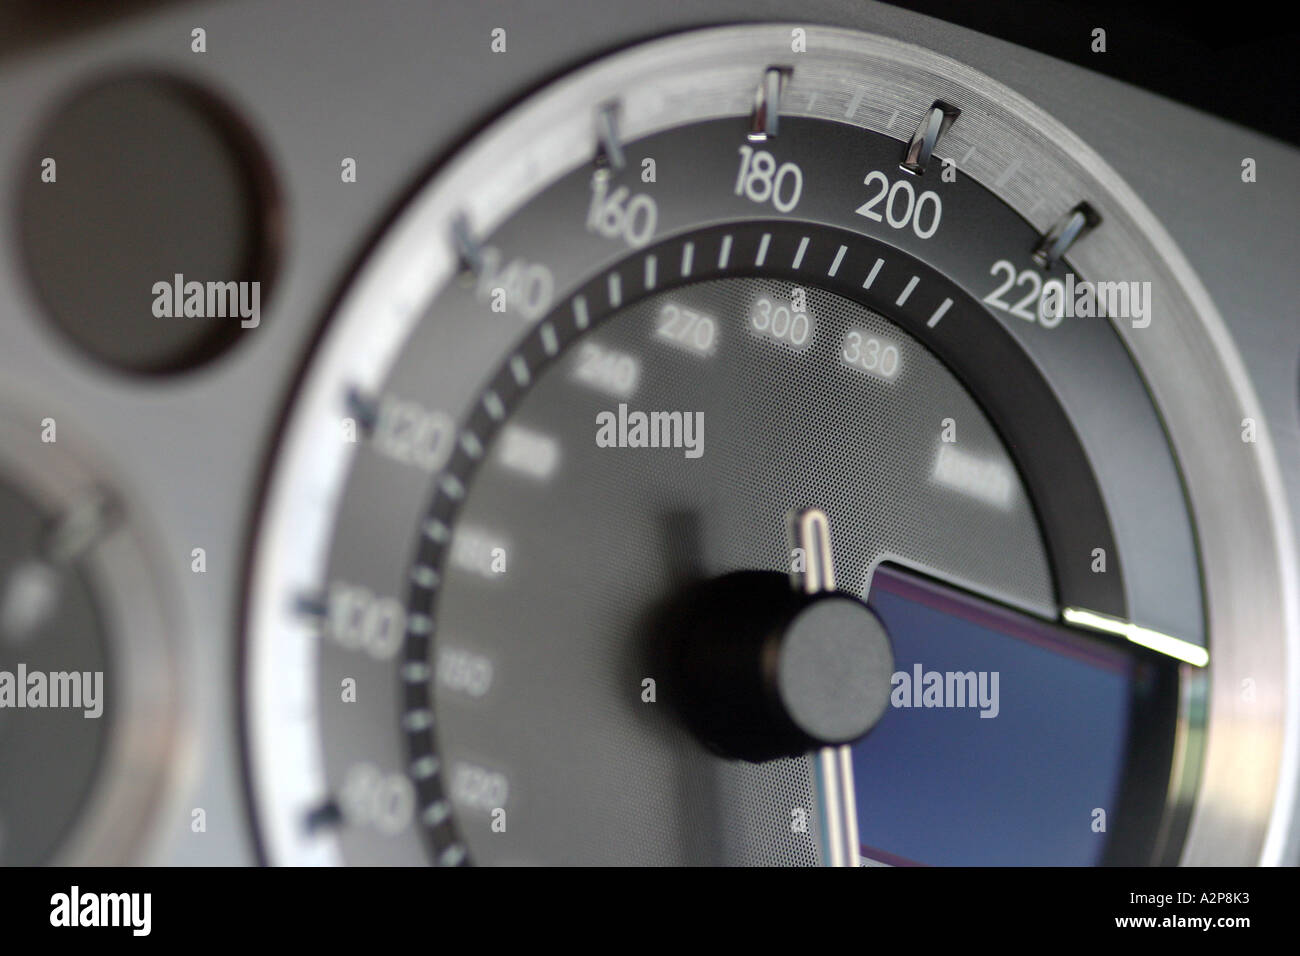 interior view of dashboard of an Aston Martin DB9 sports car - Stock Image